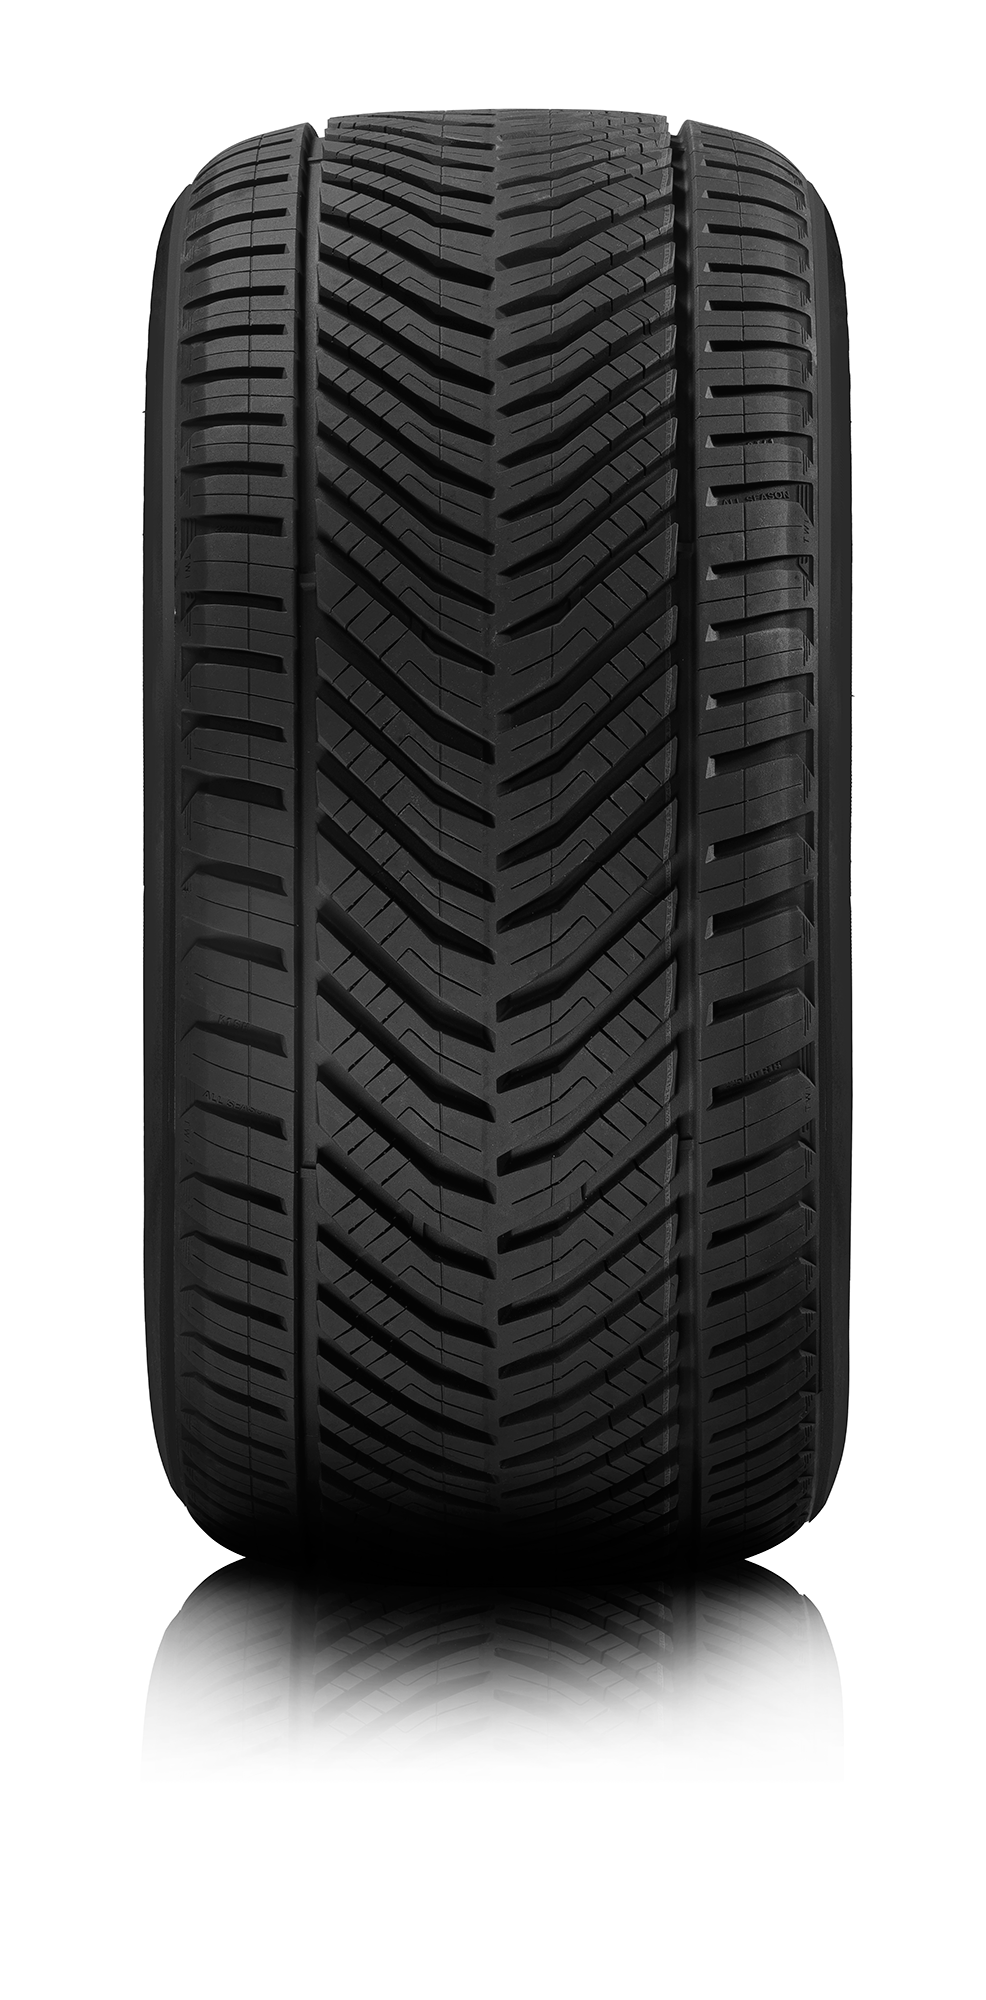 Gomme Nuove Orium 195/50 R15 82V ALL SEASON M+S pneumatici nuovi All Season